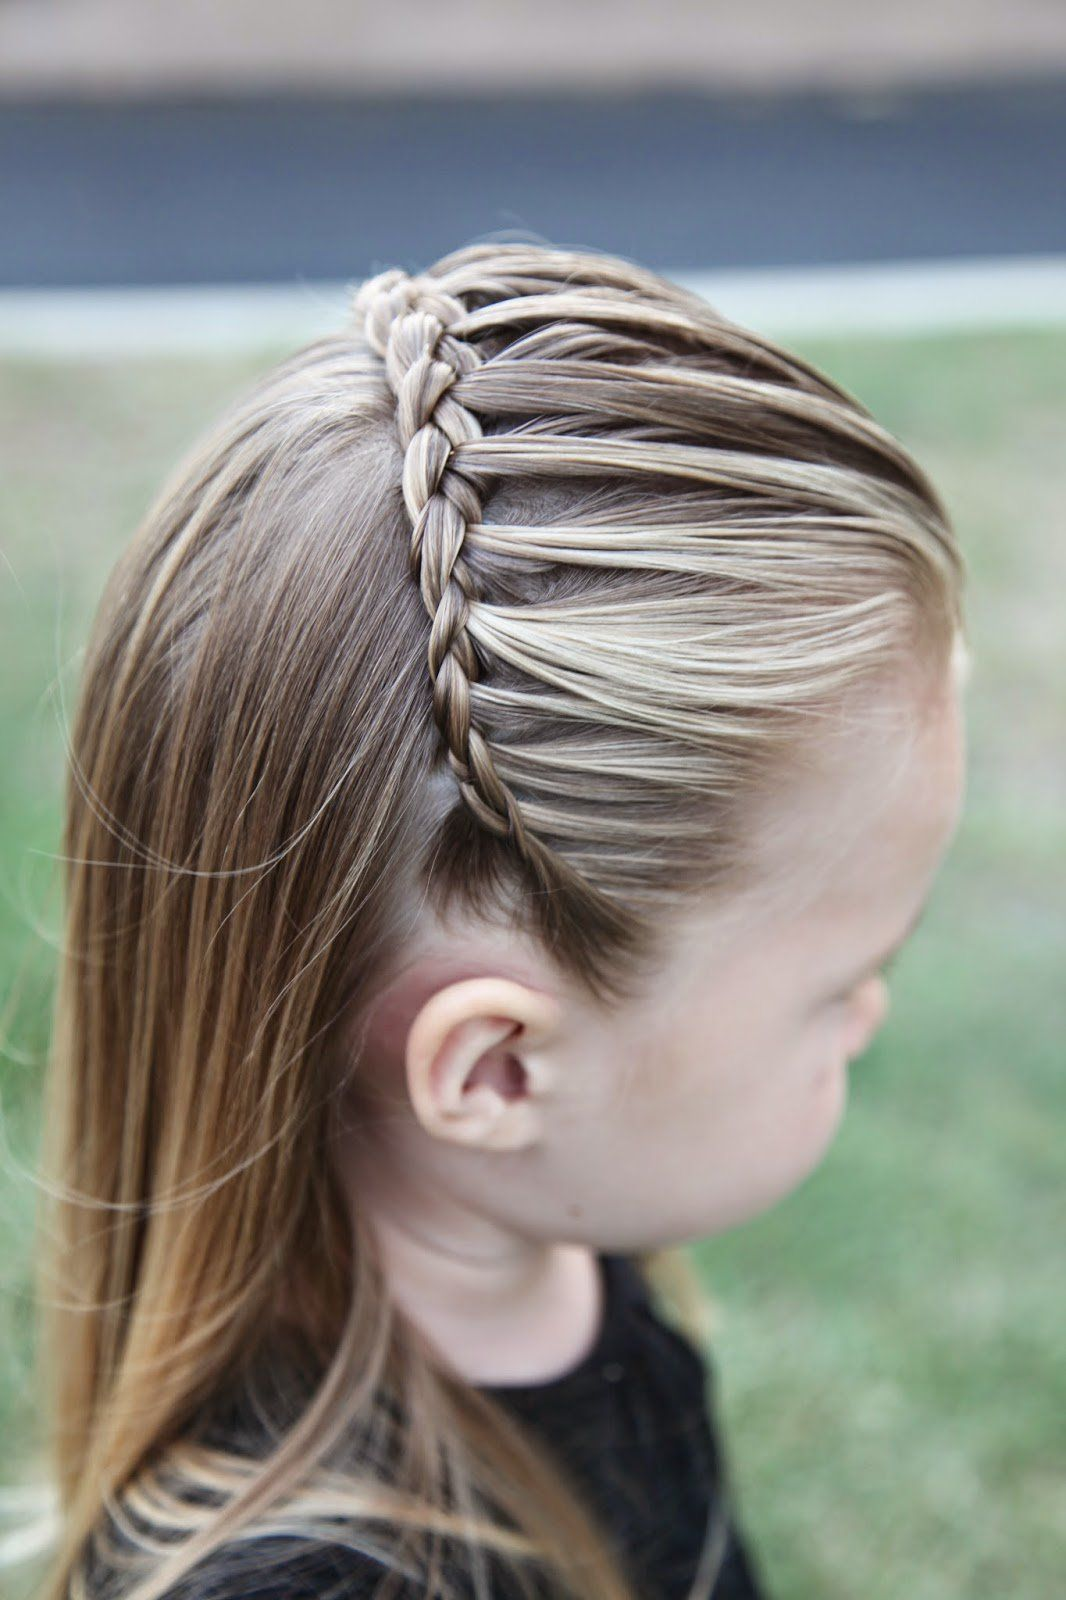 25 little girl hairstylesyou can do yourself girl hairstyles 25 little girl hairstylesyou can do yourself solutioingenieria Images